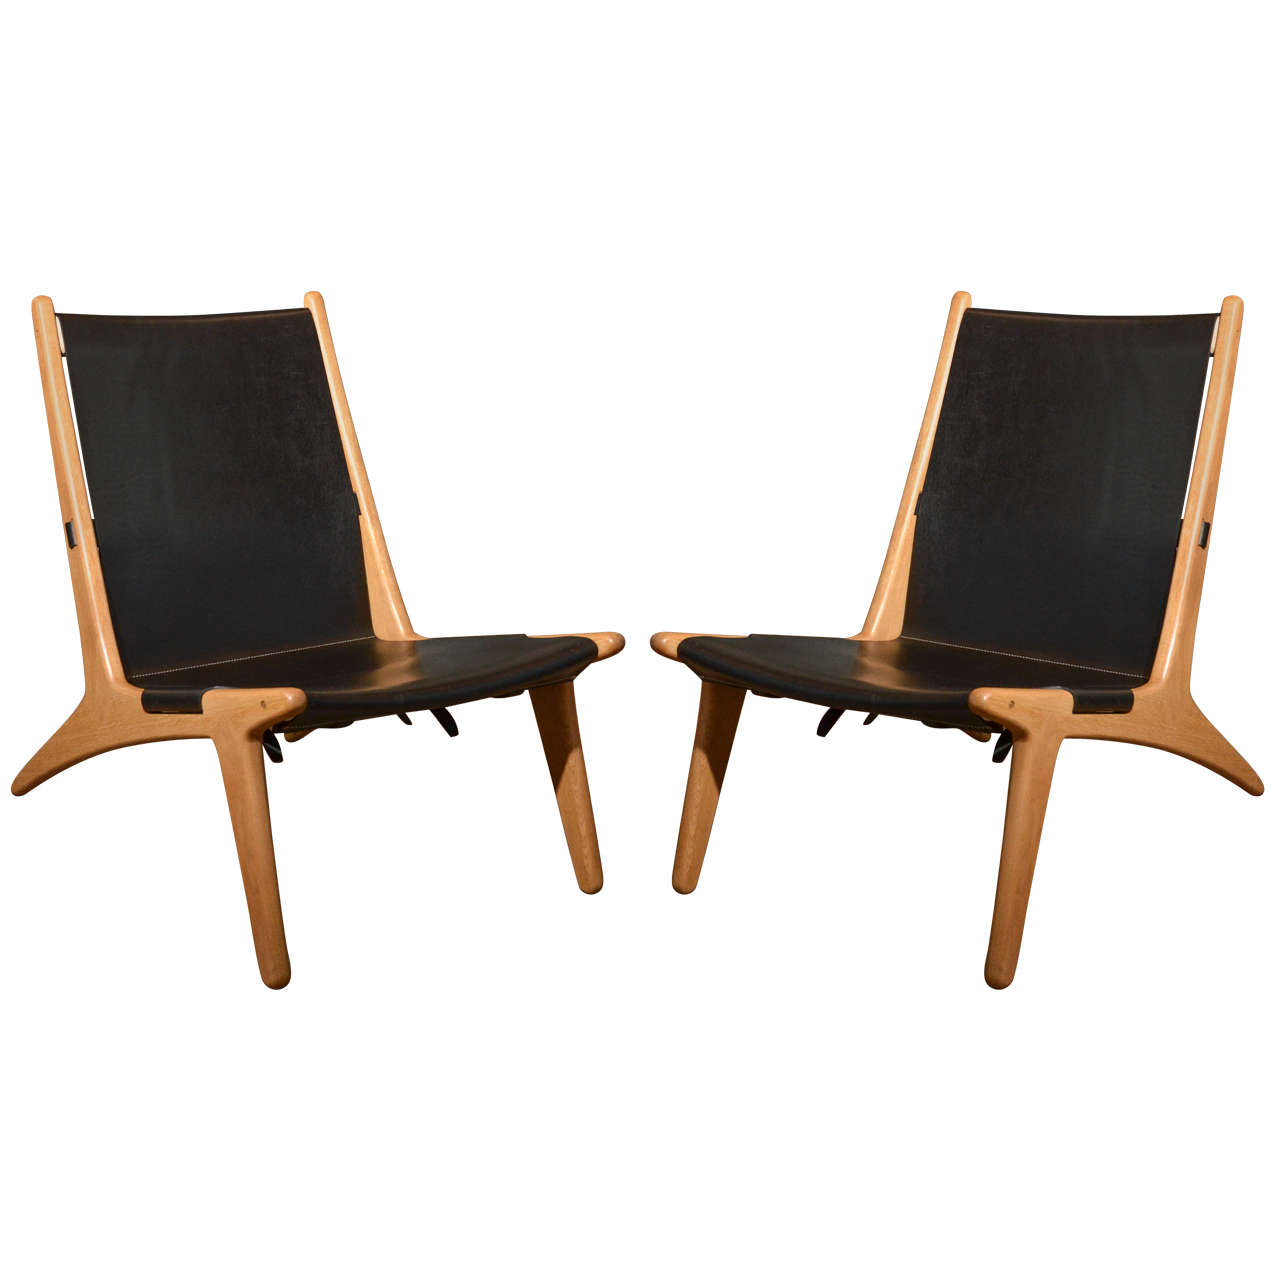 "Pair of Swedish 1954 ""Hunting Chair"" model 204 by Unar  Osten Kristansson"